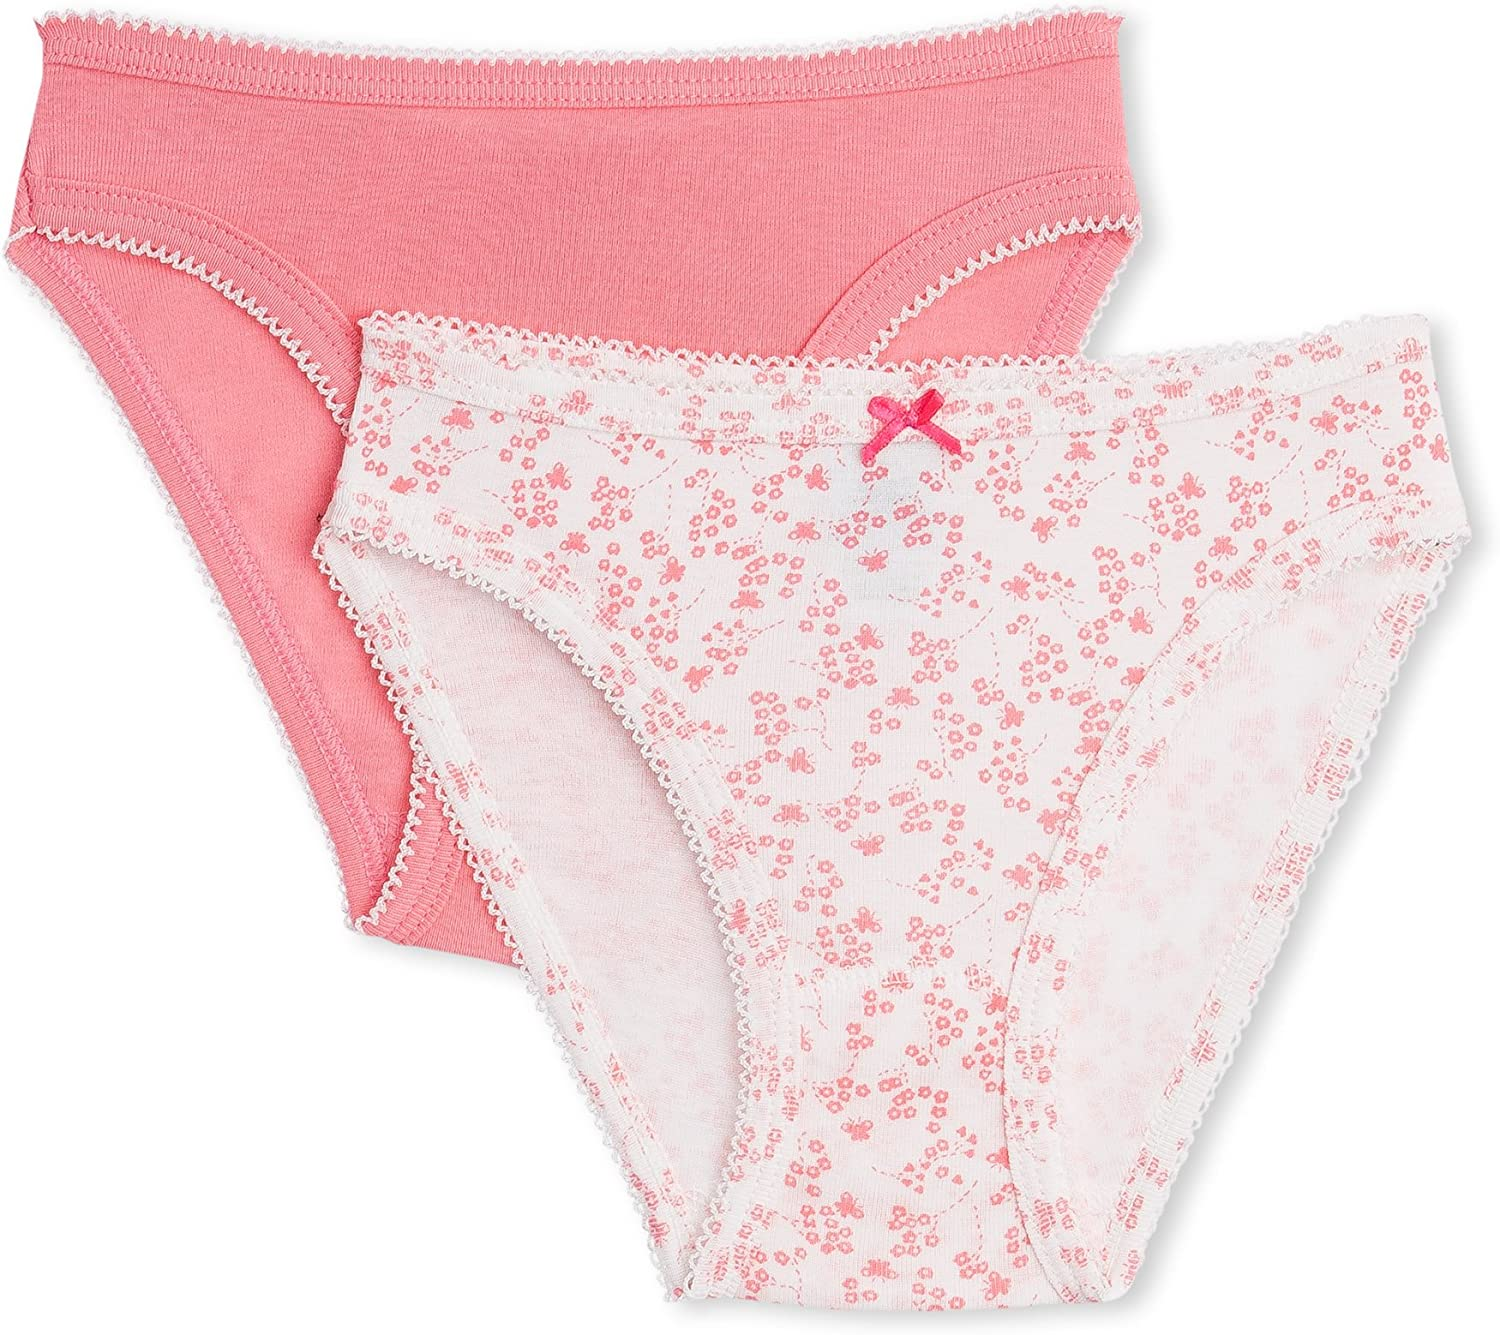 Pink//Aqua-5 Years Petit Bateau 3 Pack Underwear Toddler//Kid